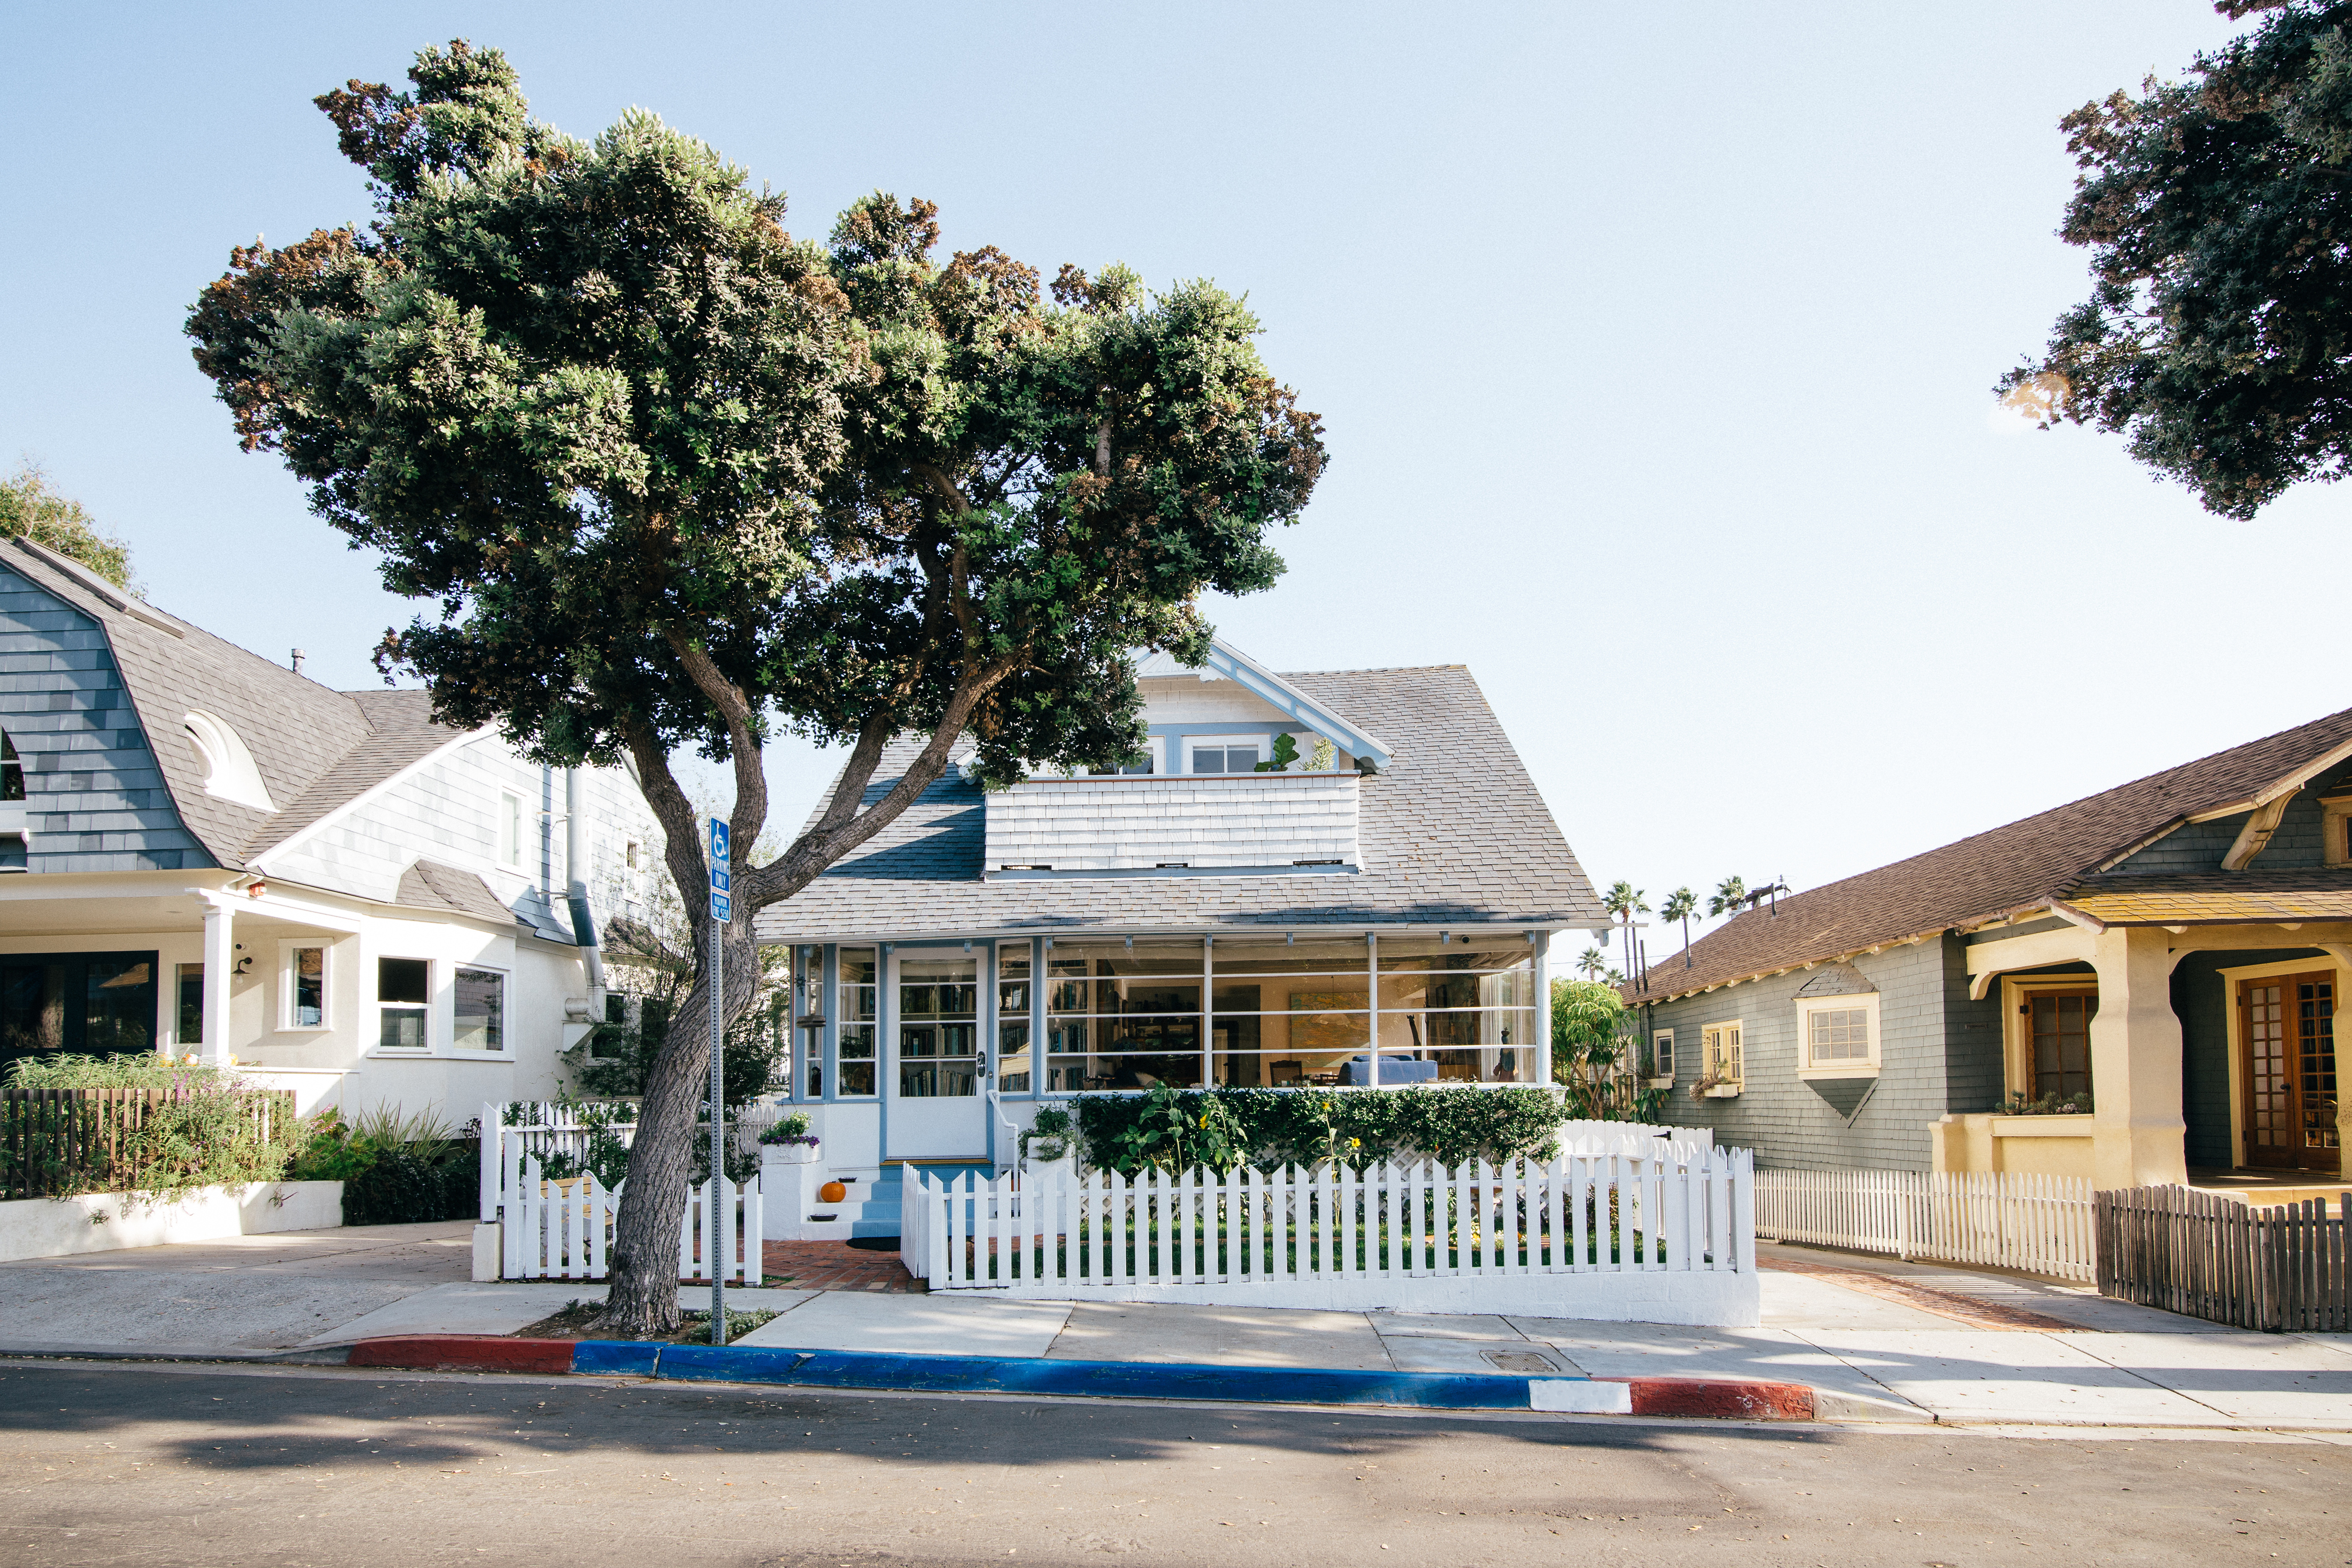 Pretty bungalow home, with a house on each side. Large tree in front. The home is white, with light blue trim, lots of windows, green in the front yard with a white picket fence.